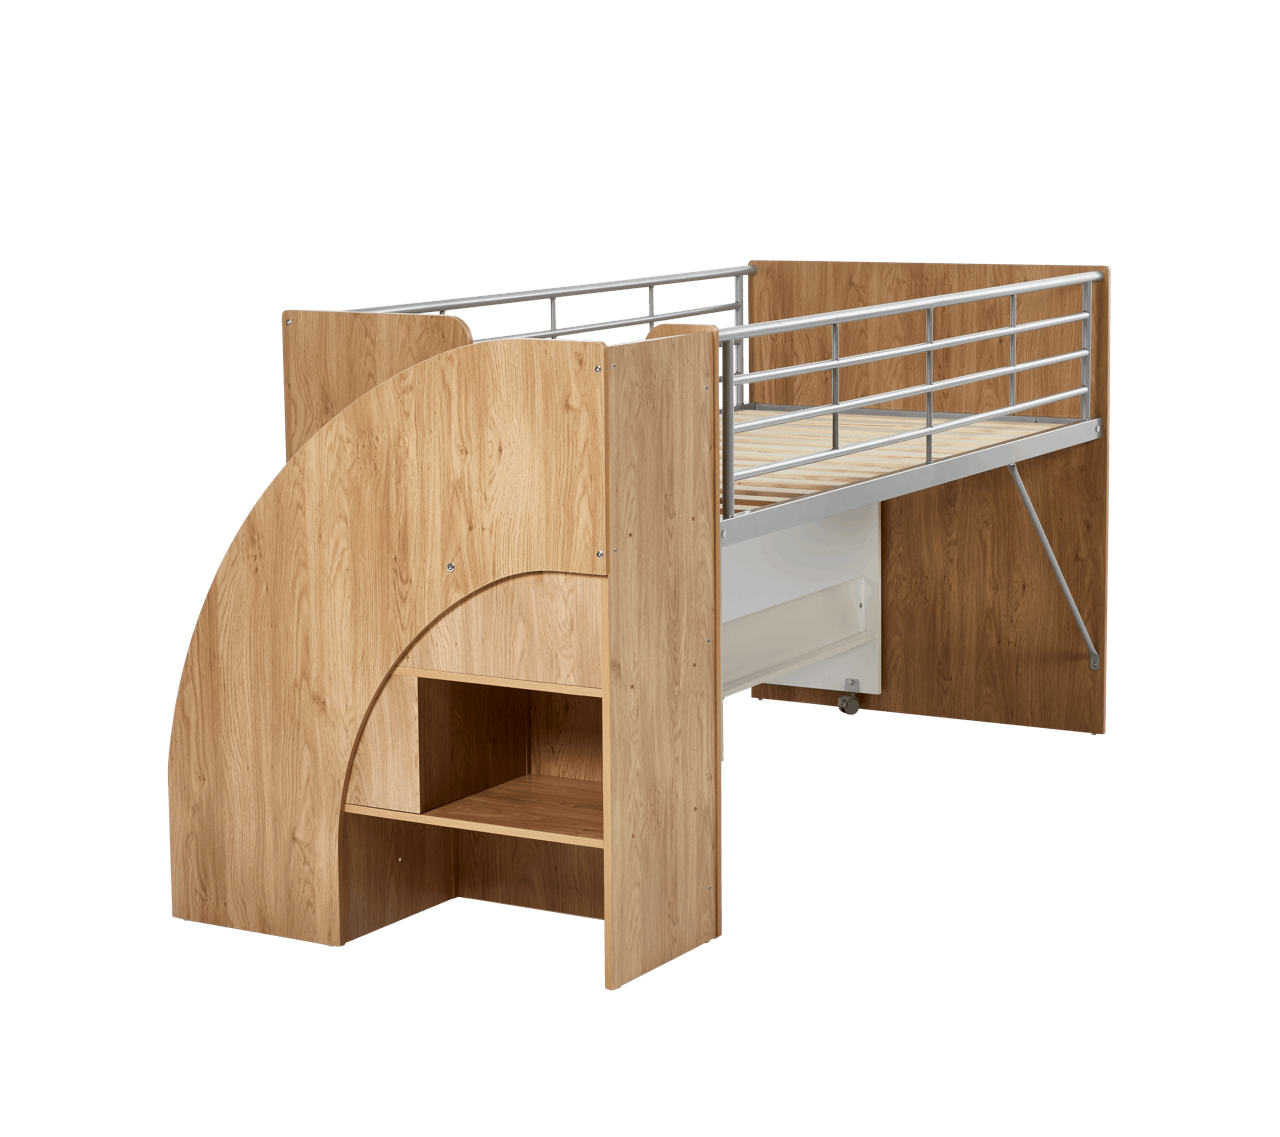 Snooze Bunk Beds Snooze Bilby Bed Assembly Instructions